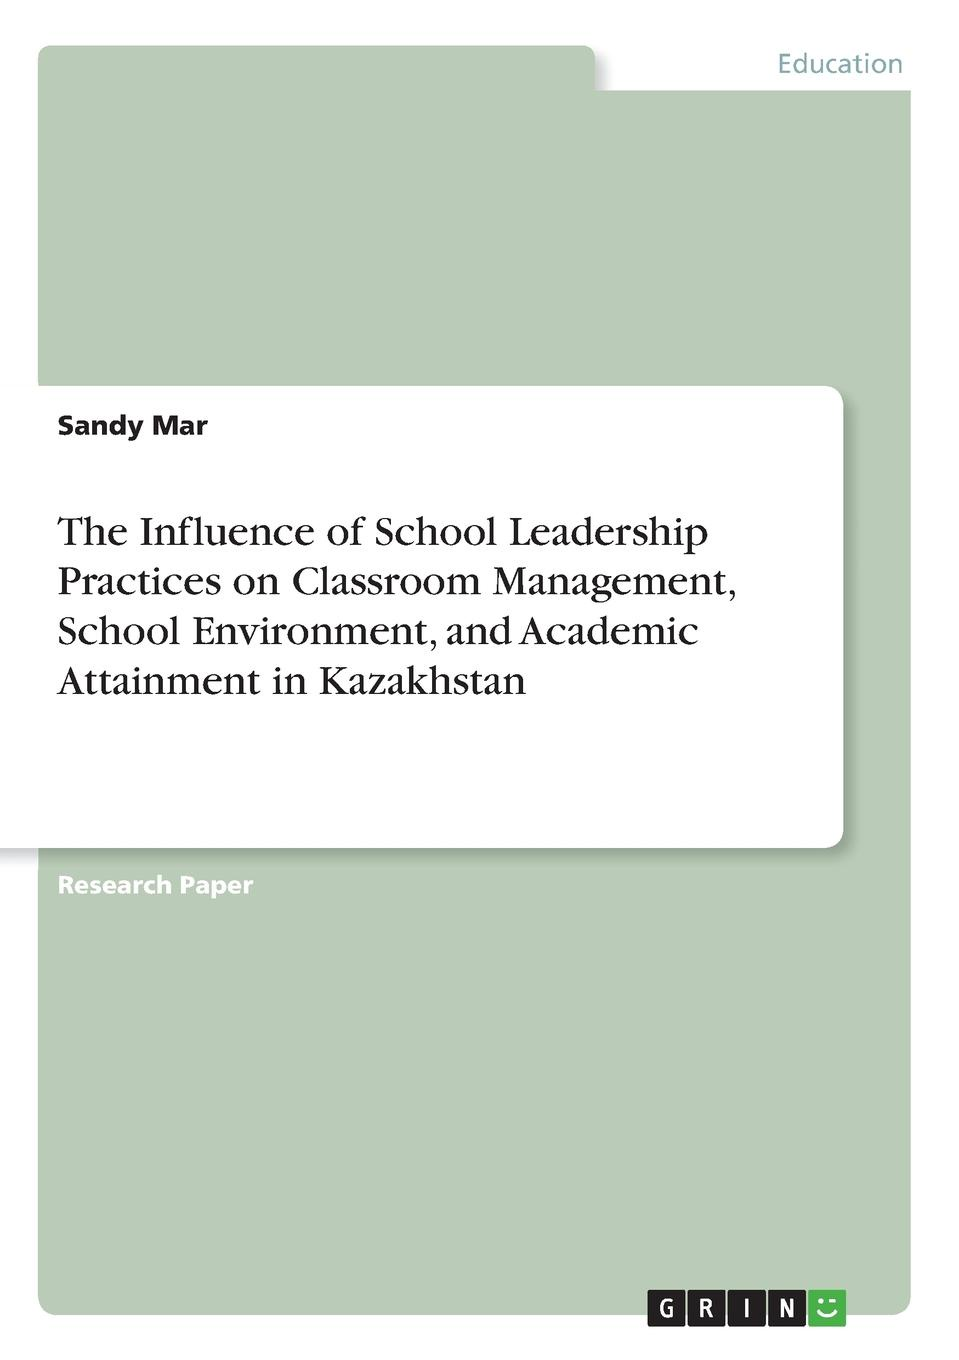 Sandy Mar The Influence of School Leadership Practices on Classroom Management, School Environment, and Academic Attainment in Kazakhstan tom payzant urban school leadership